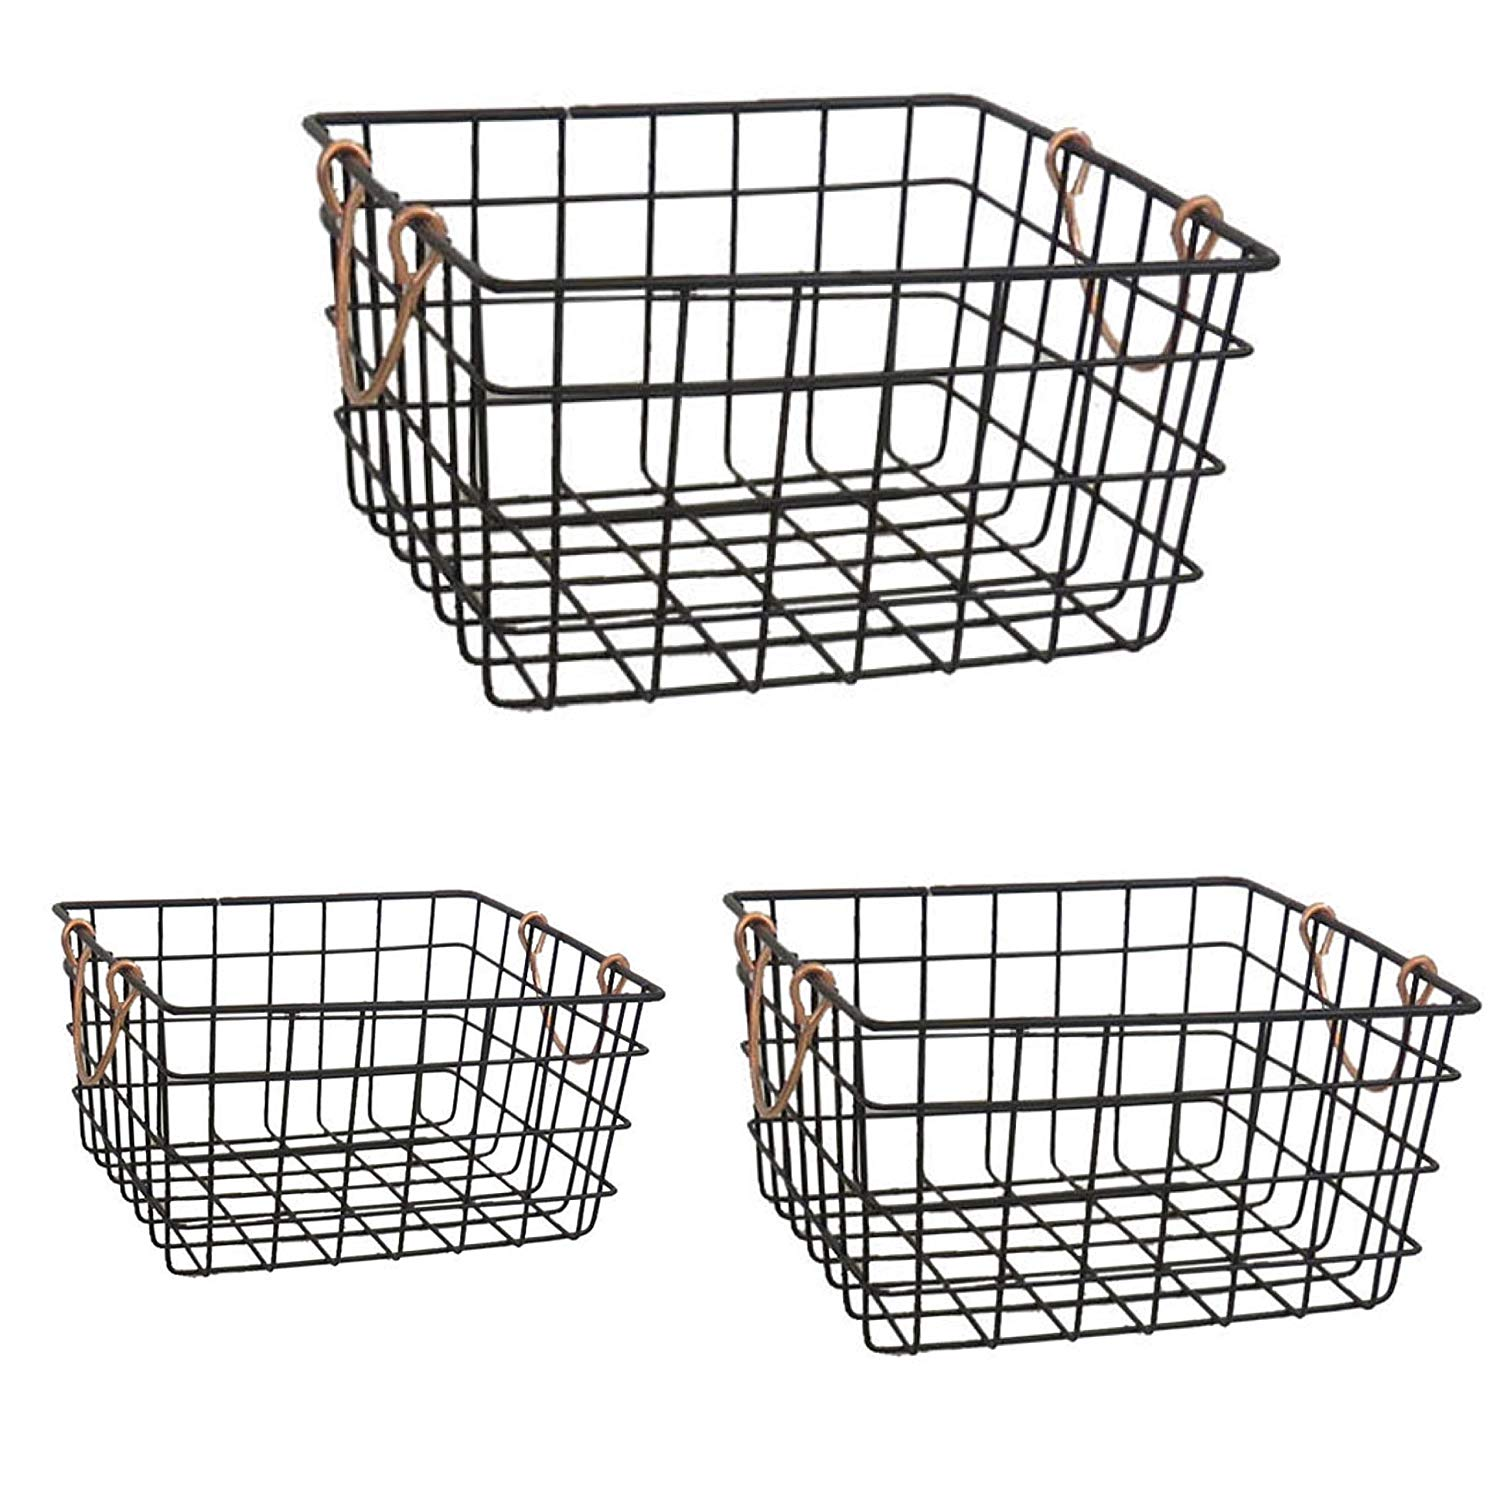 Farmhouse Vibes | Apartment Decor | French Country Black Wire Baskets